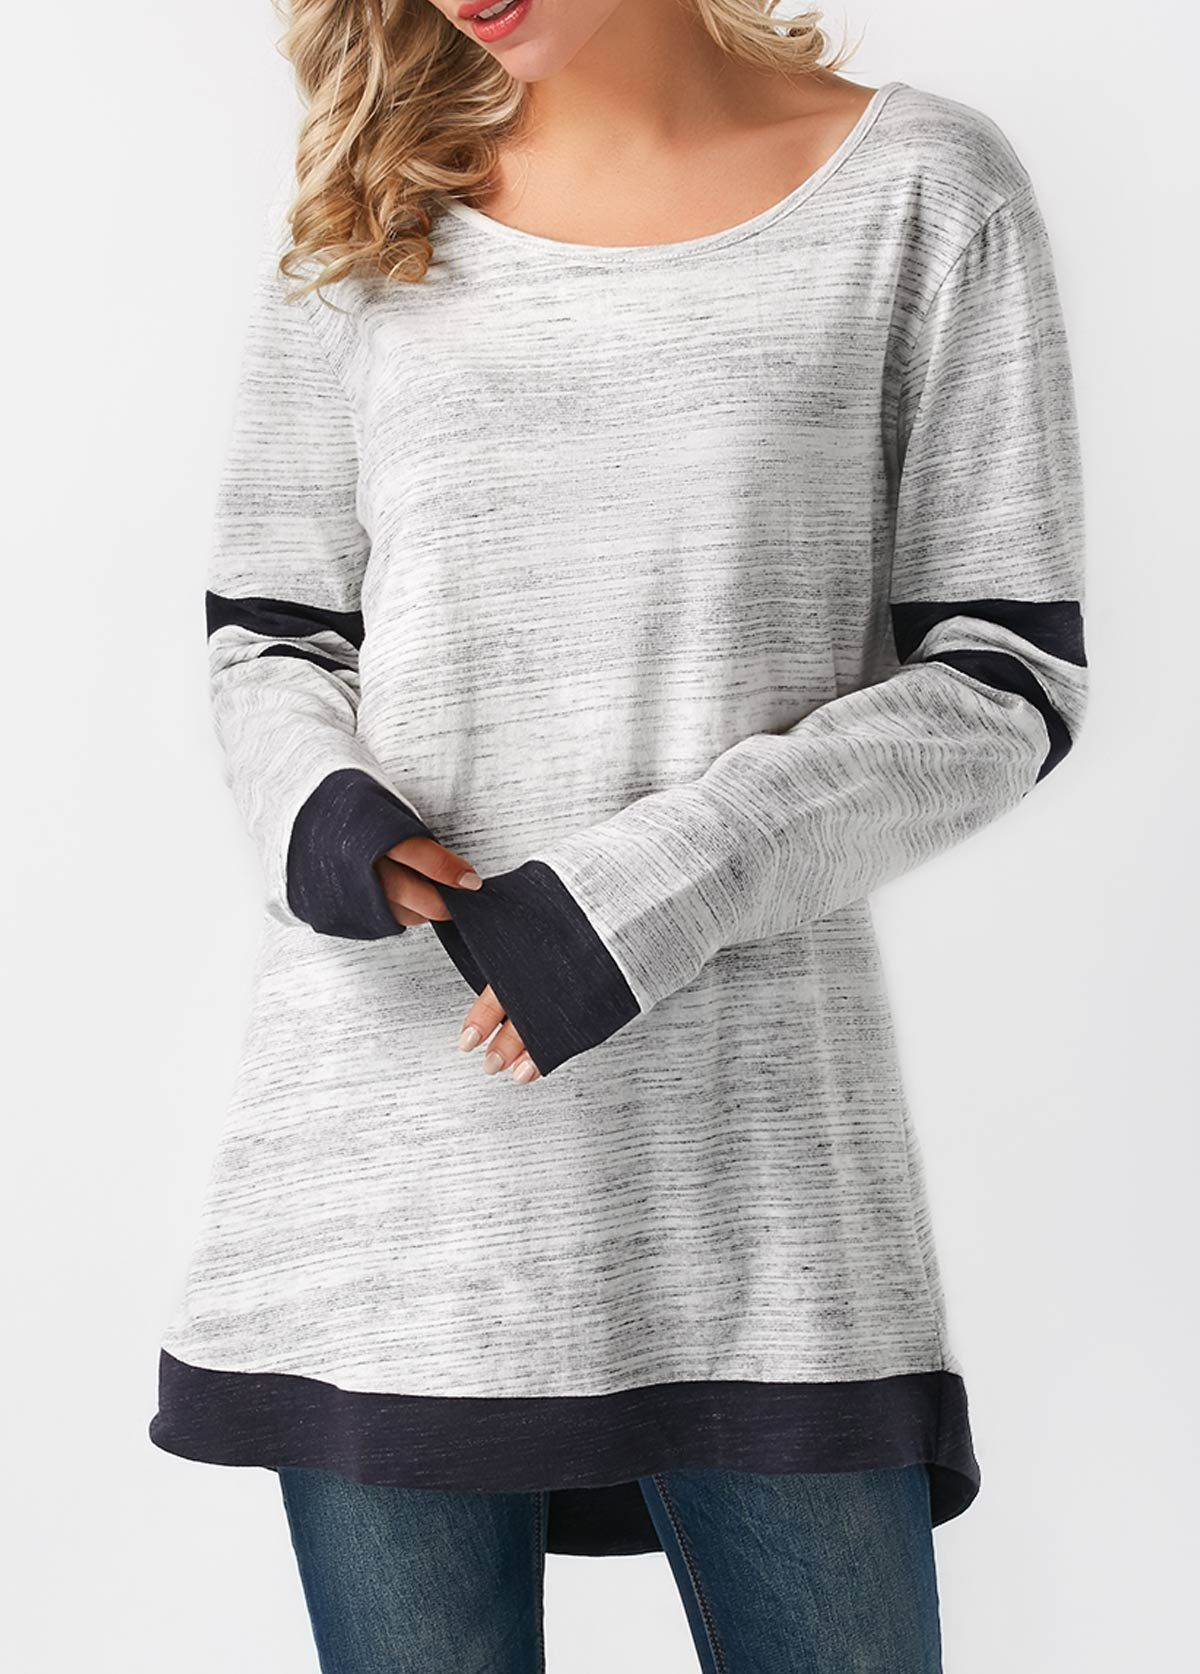 267716a2b7 Grey Long Sleeve Asymmetric Hem T Shirt | Rotita.com - USD $28.42 ...